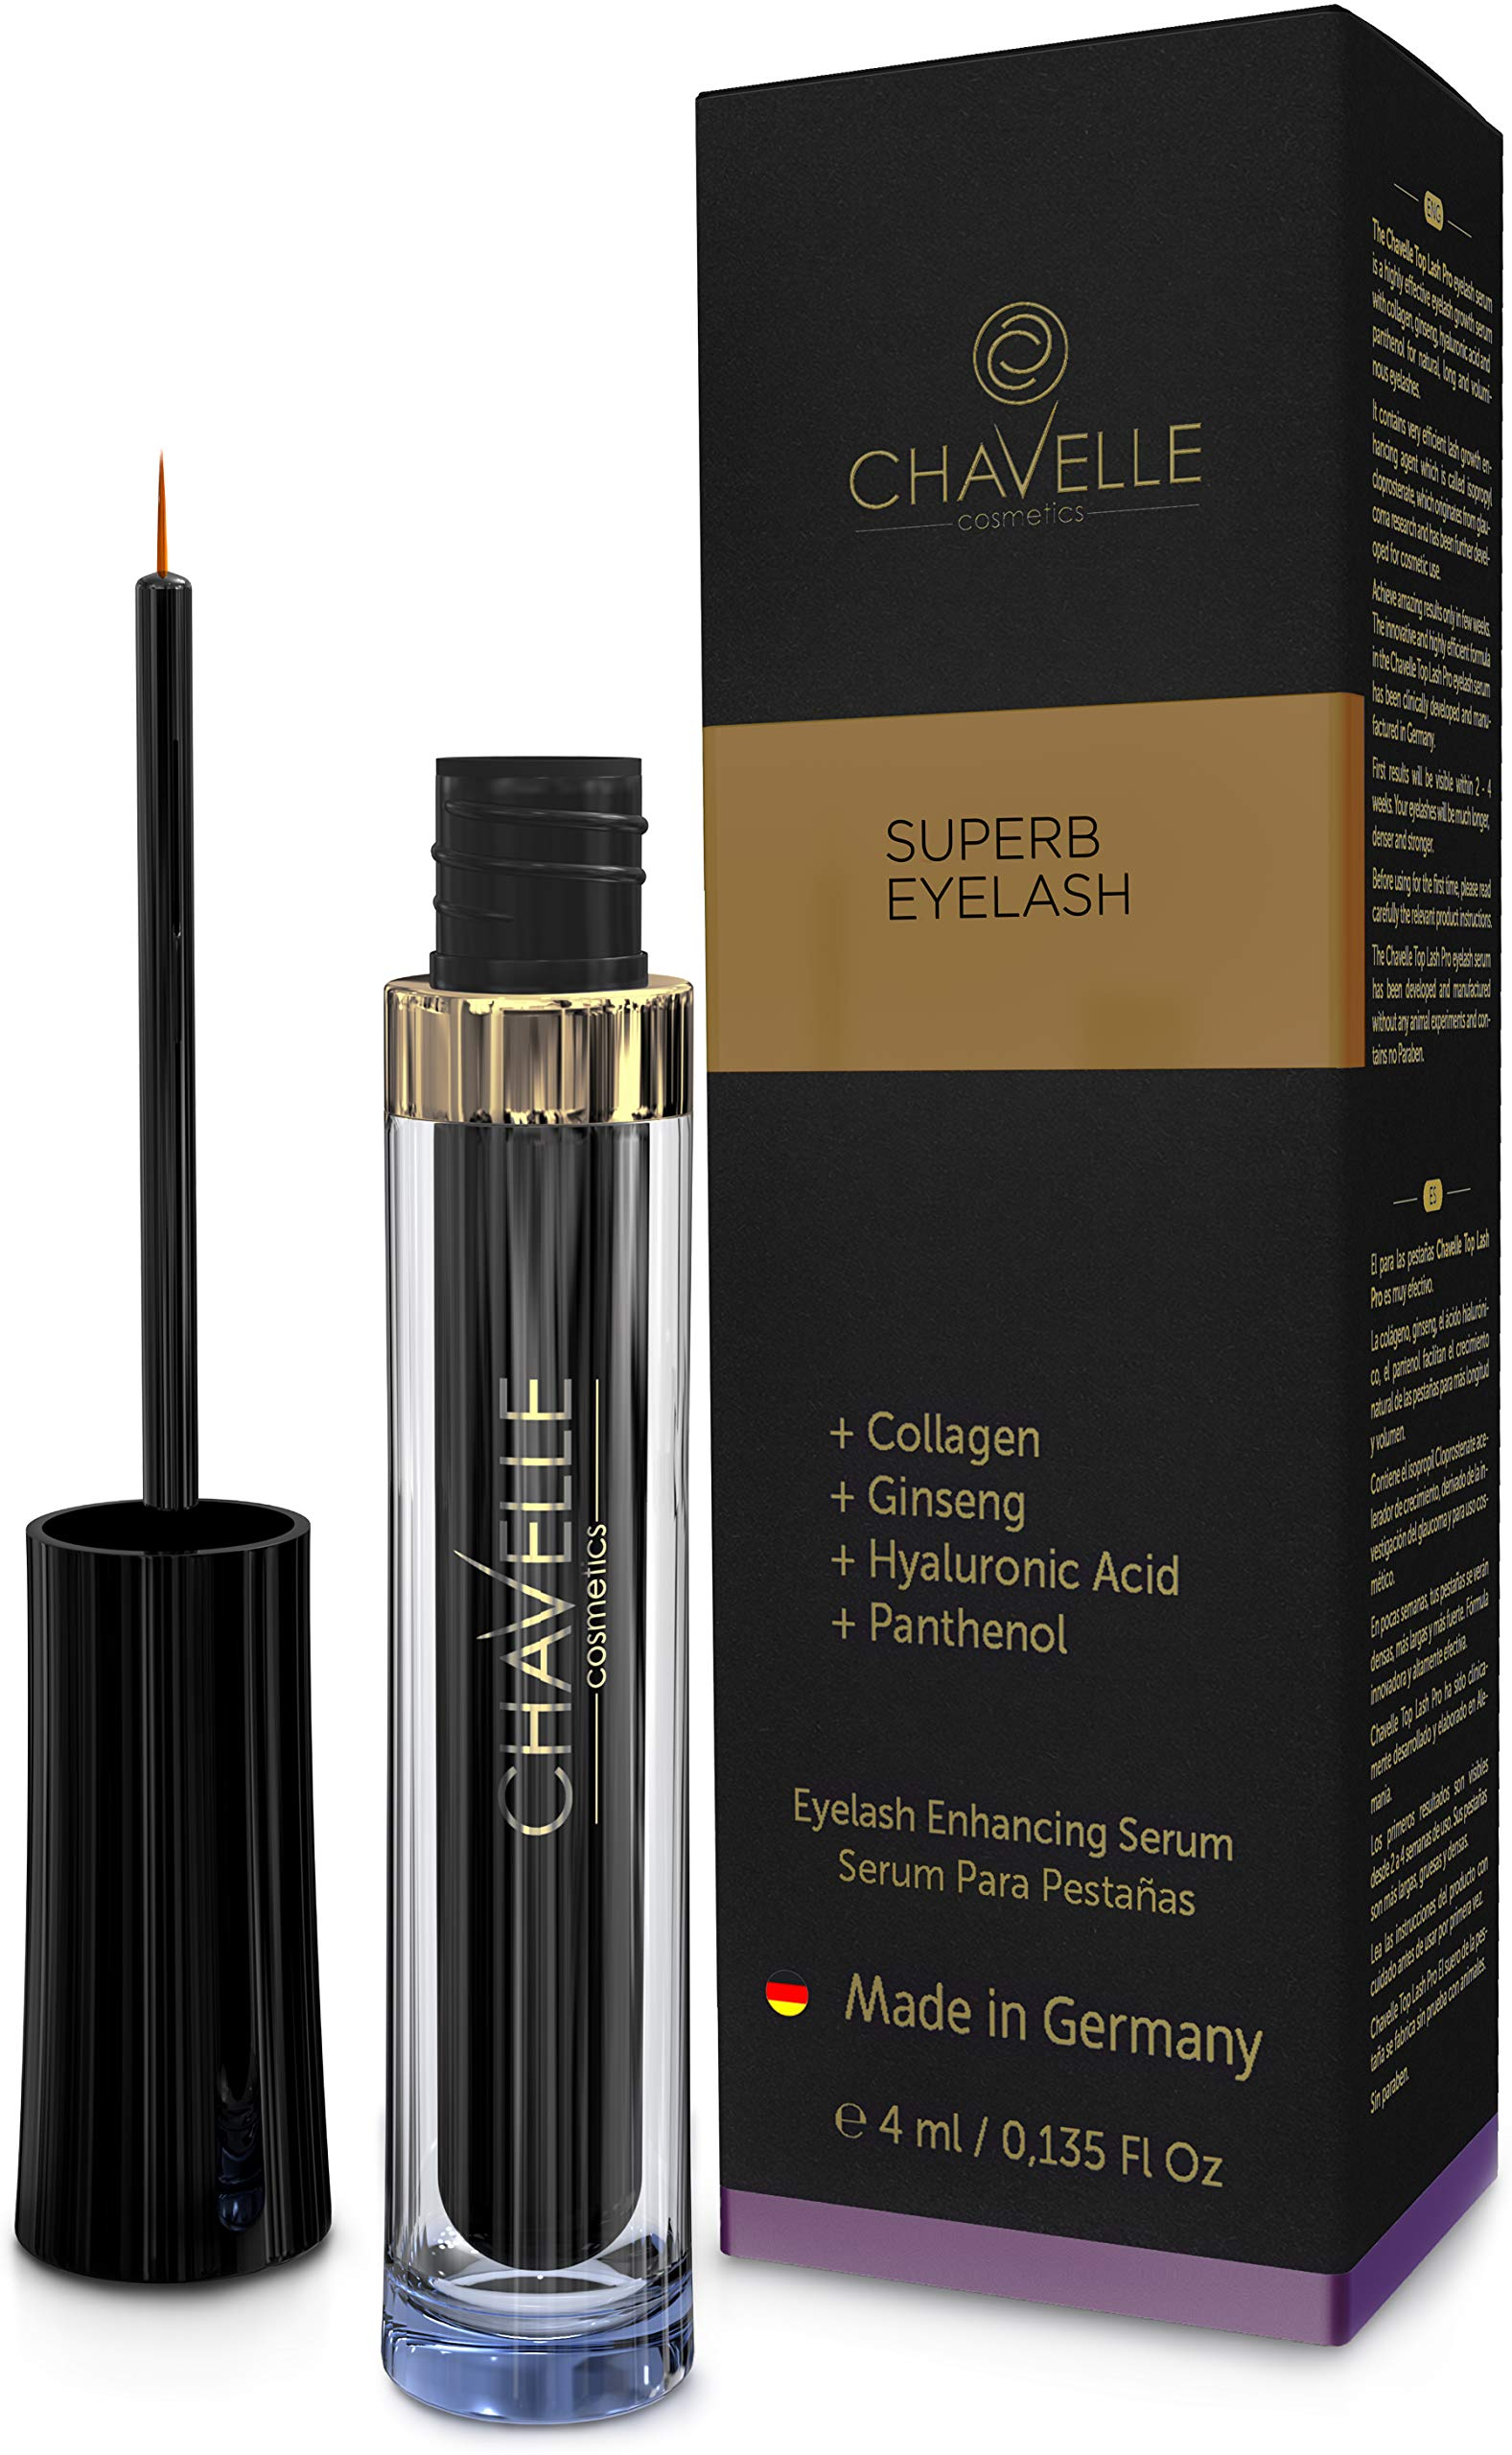 Eyelash Growth Serum Made in Germany - Natural Highly Effective Enhancer and Booster for Longer Eyelashes and Thicker Eyebrows I 0.135 Fl.Oz Superb Eyelash by Chavelle